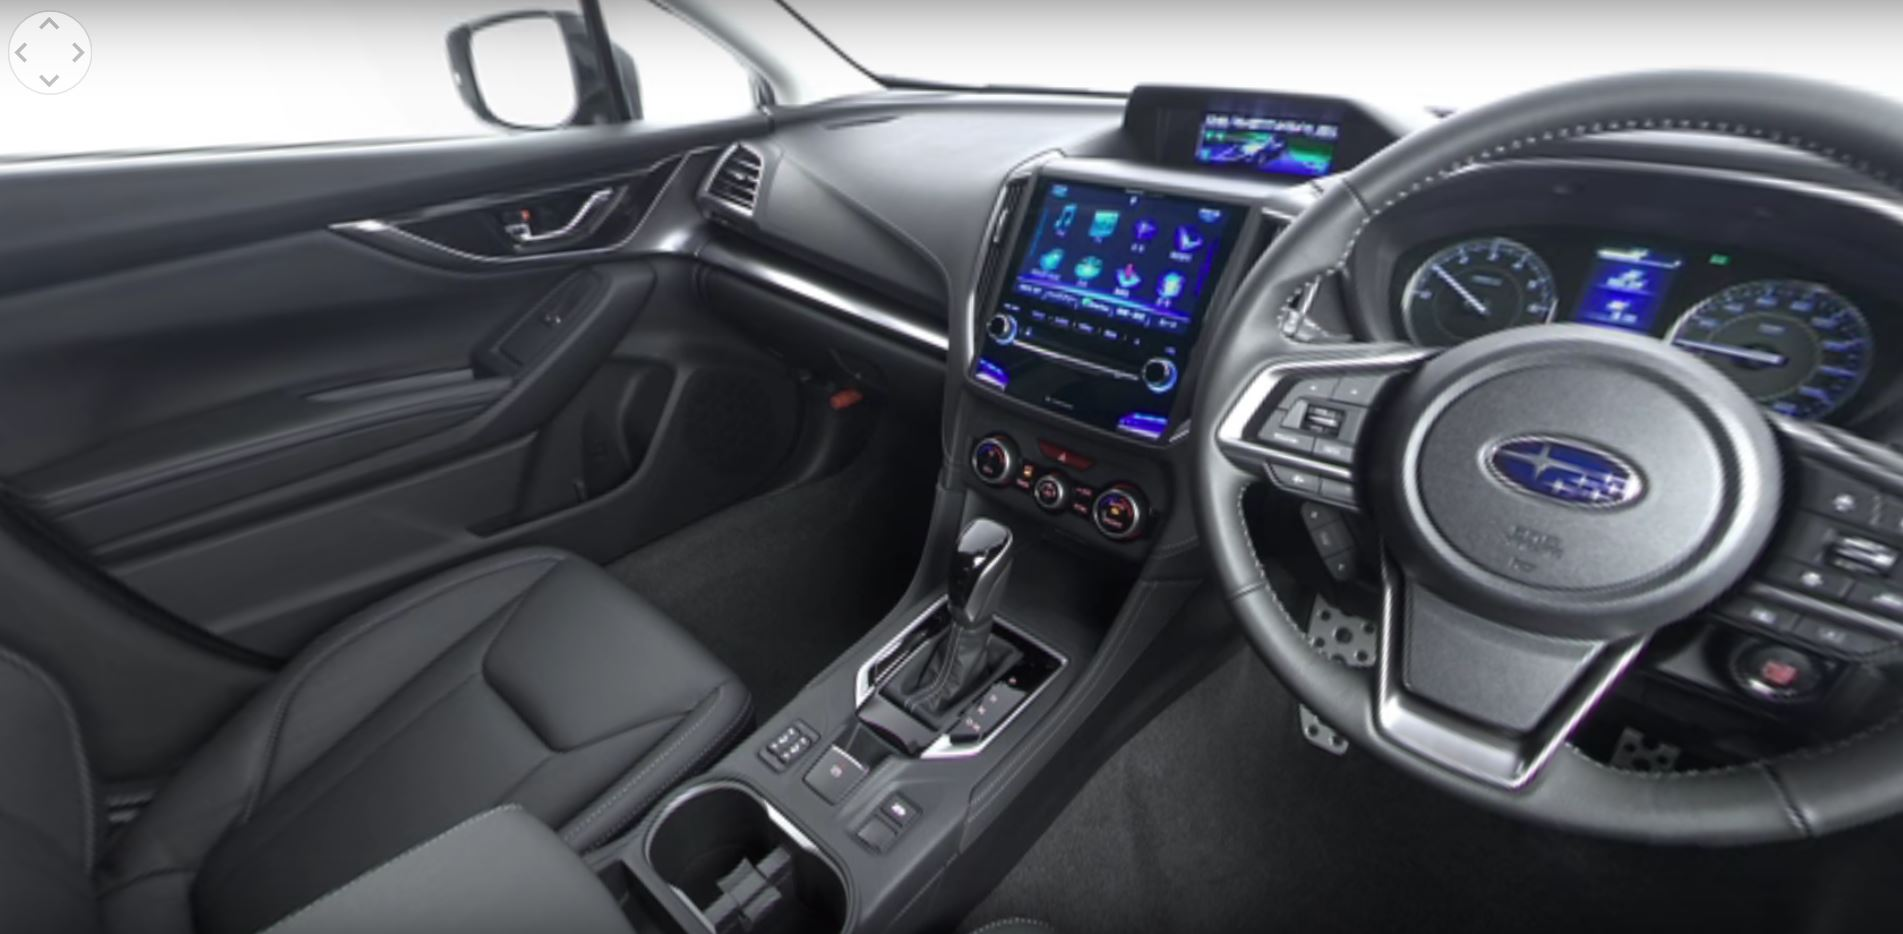 360 Degree Video Of 2017 Impreza Interior Released By Subaru In Japan